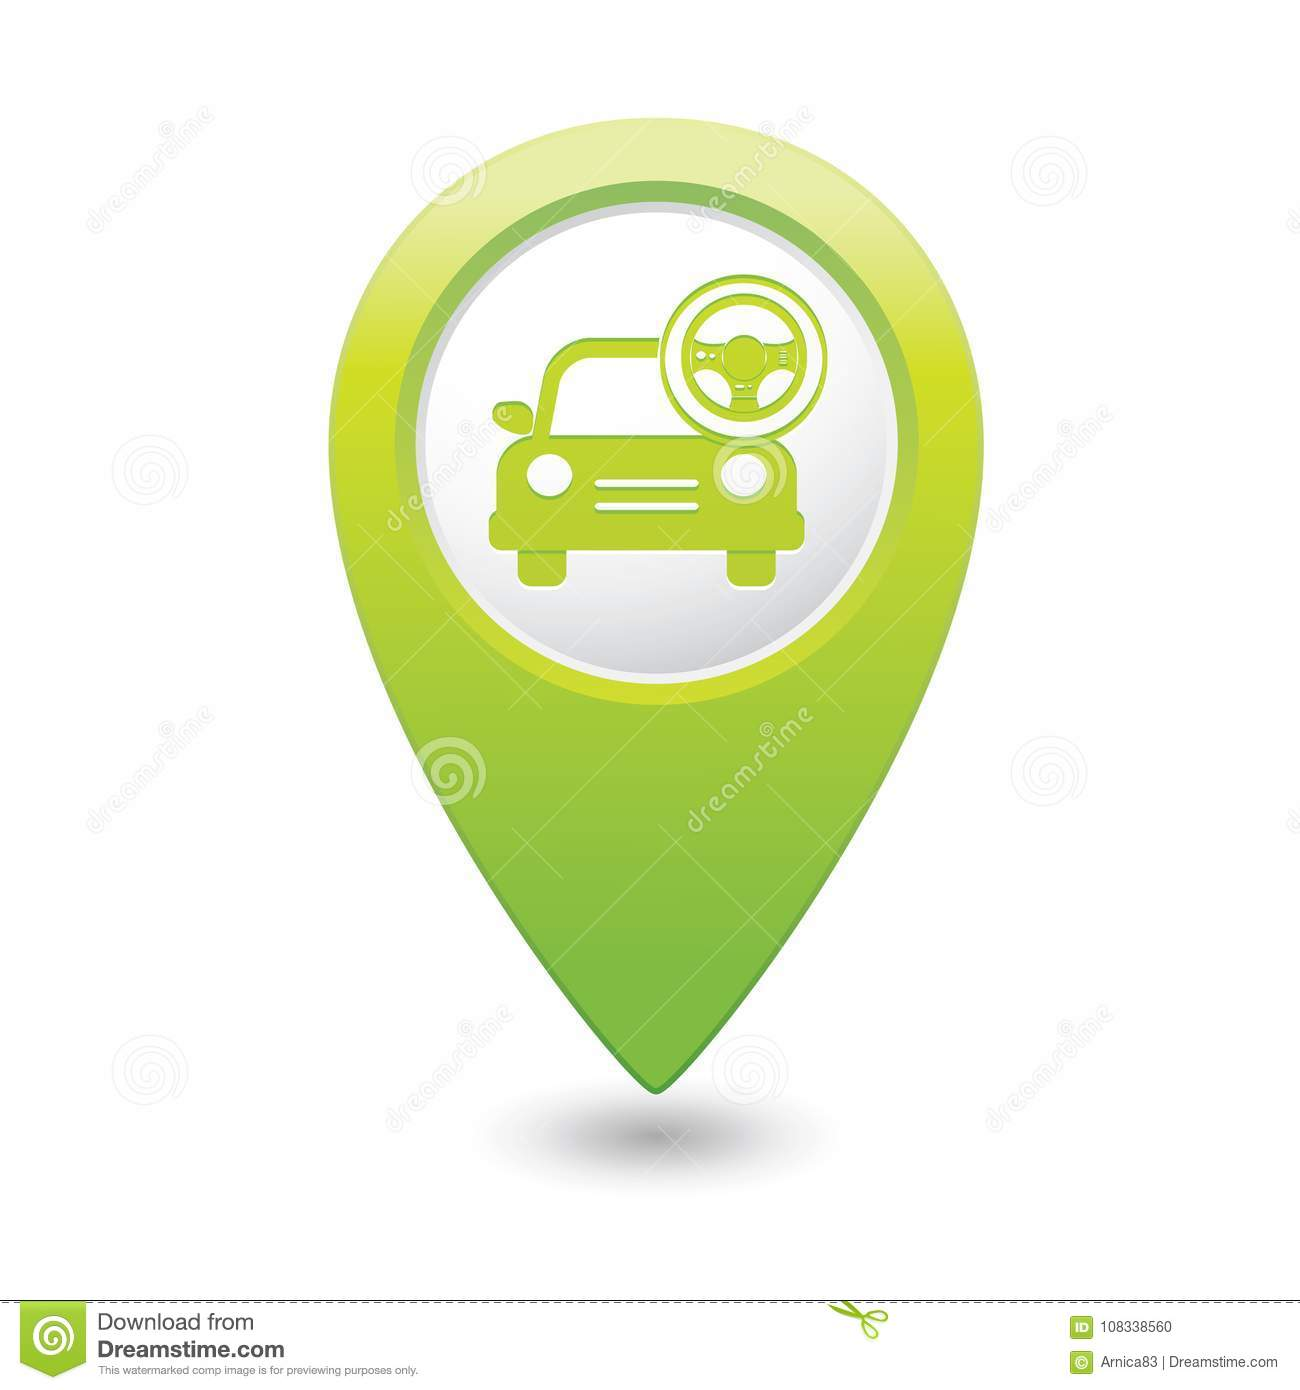 Car service. Car with steering wheel icon on map pointer